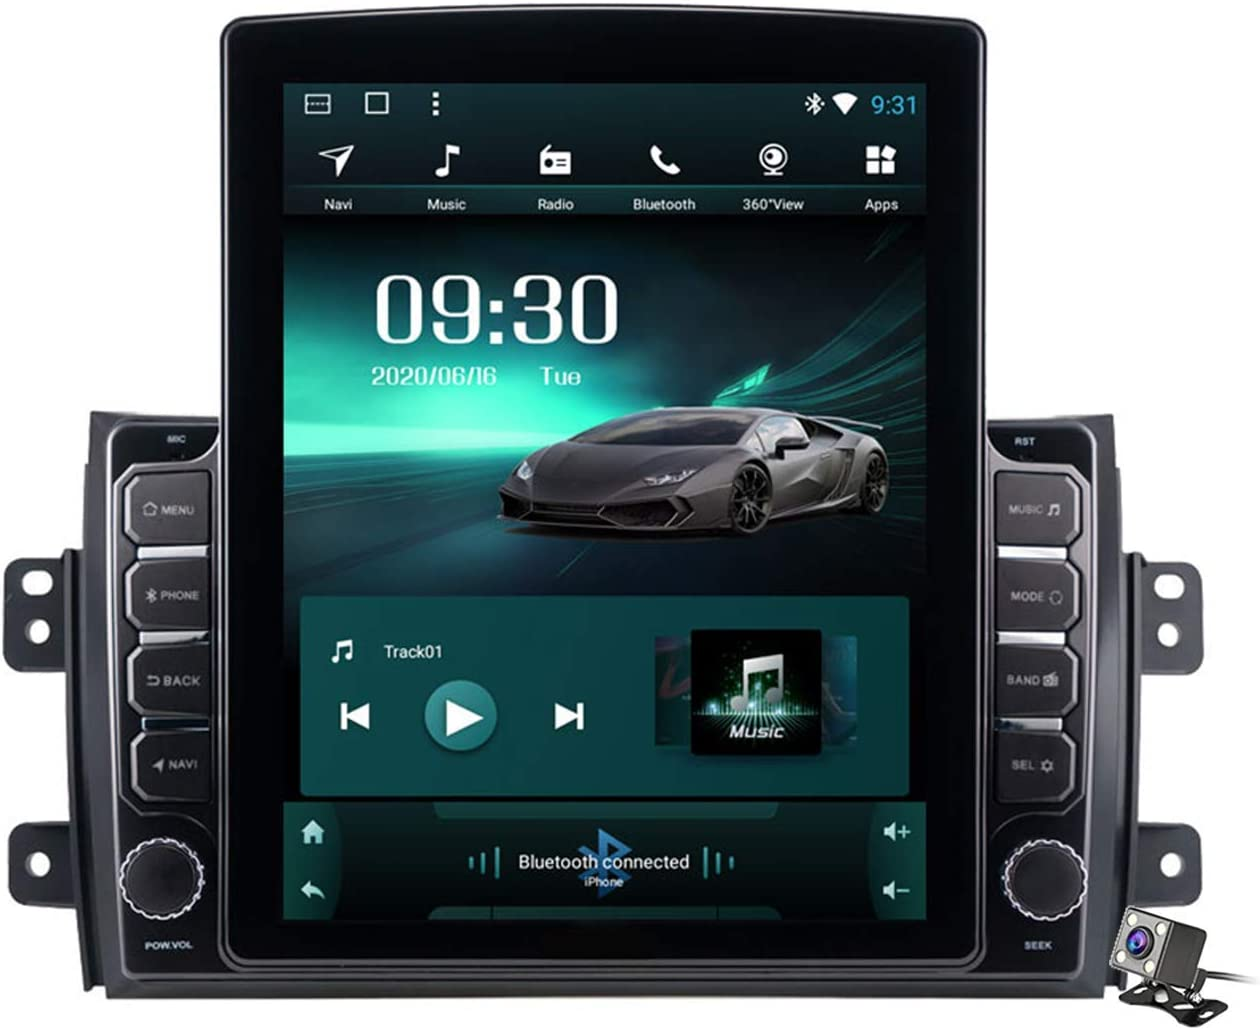 Outstanding Car Stereo Android 9.0 Radio for SX4 Suzuki Naviga GPS 2006-2016 Max 51% OFF